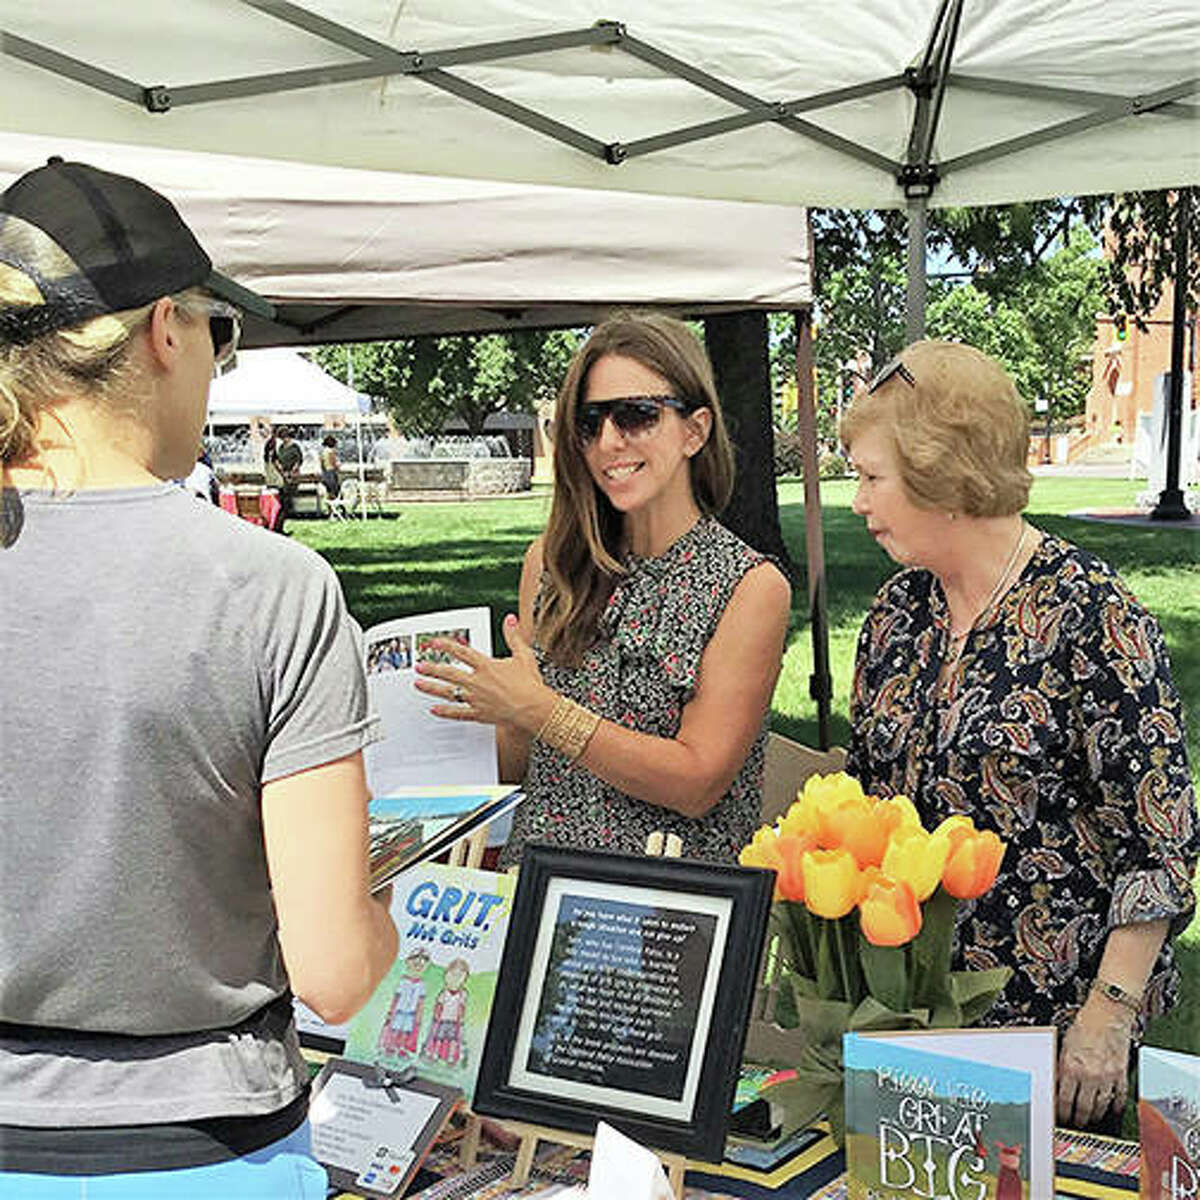 Local author Tammi Beck talked with people and sold her books at the inaugural Edwardsville Book Festival in 2019. This year's event is slated for Sept. 4 at Edwardsville City Park.